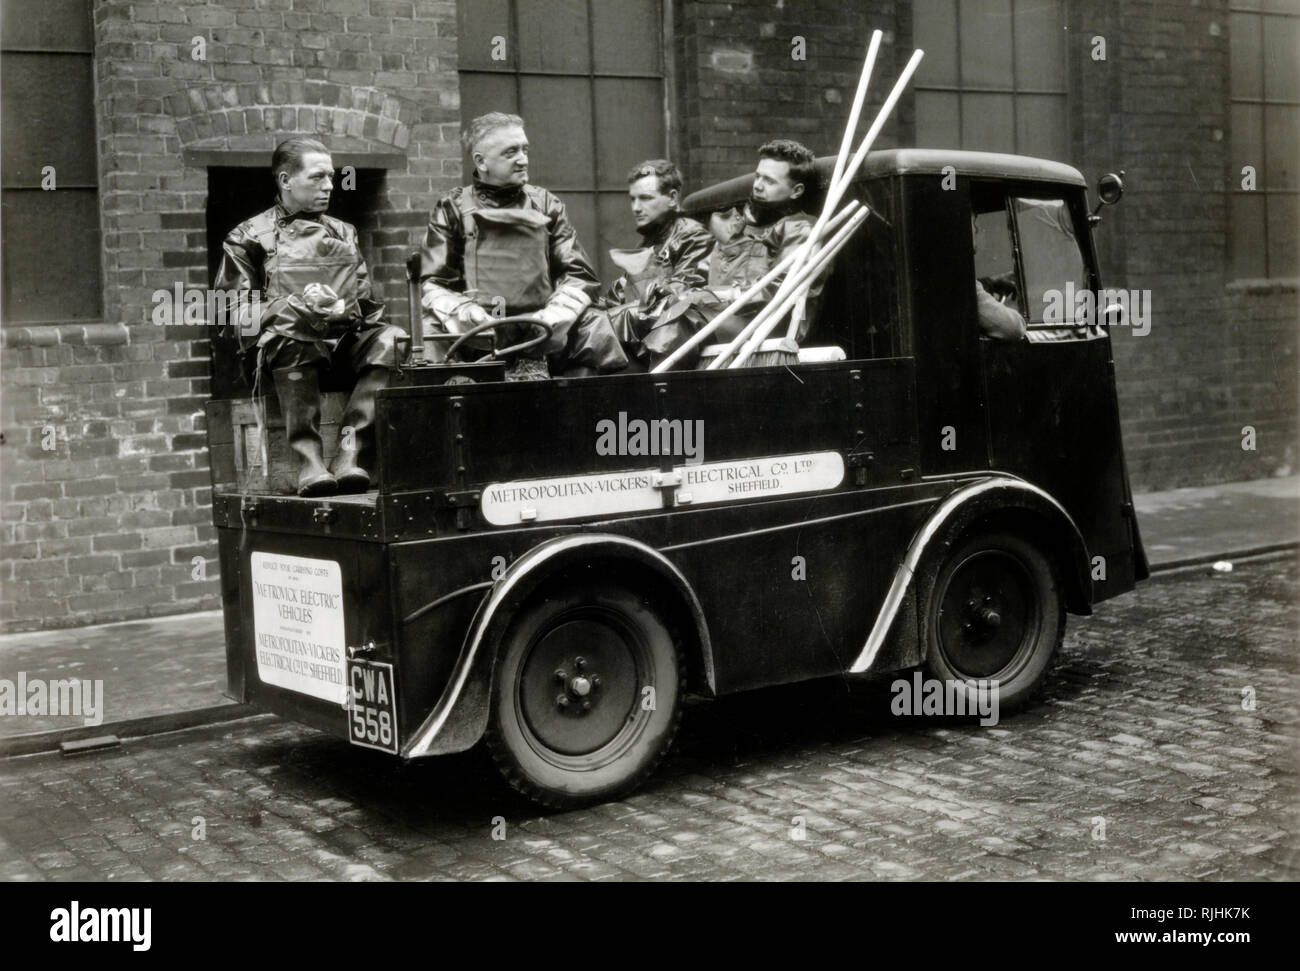 Early Electric Vehicle, Cleaning Truck or Van and Waste Collectors, Garbage Collectors or Bin Men, Sheffield, England c1930s - Stock Image